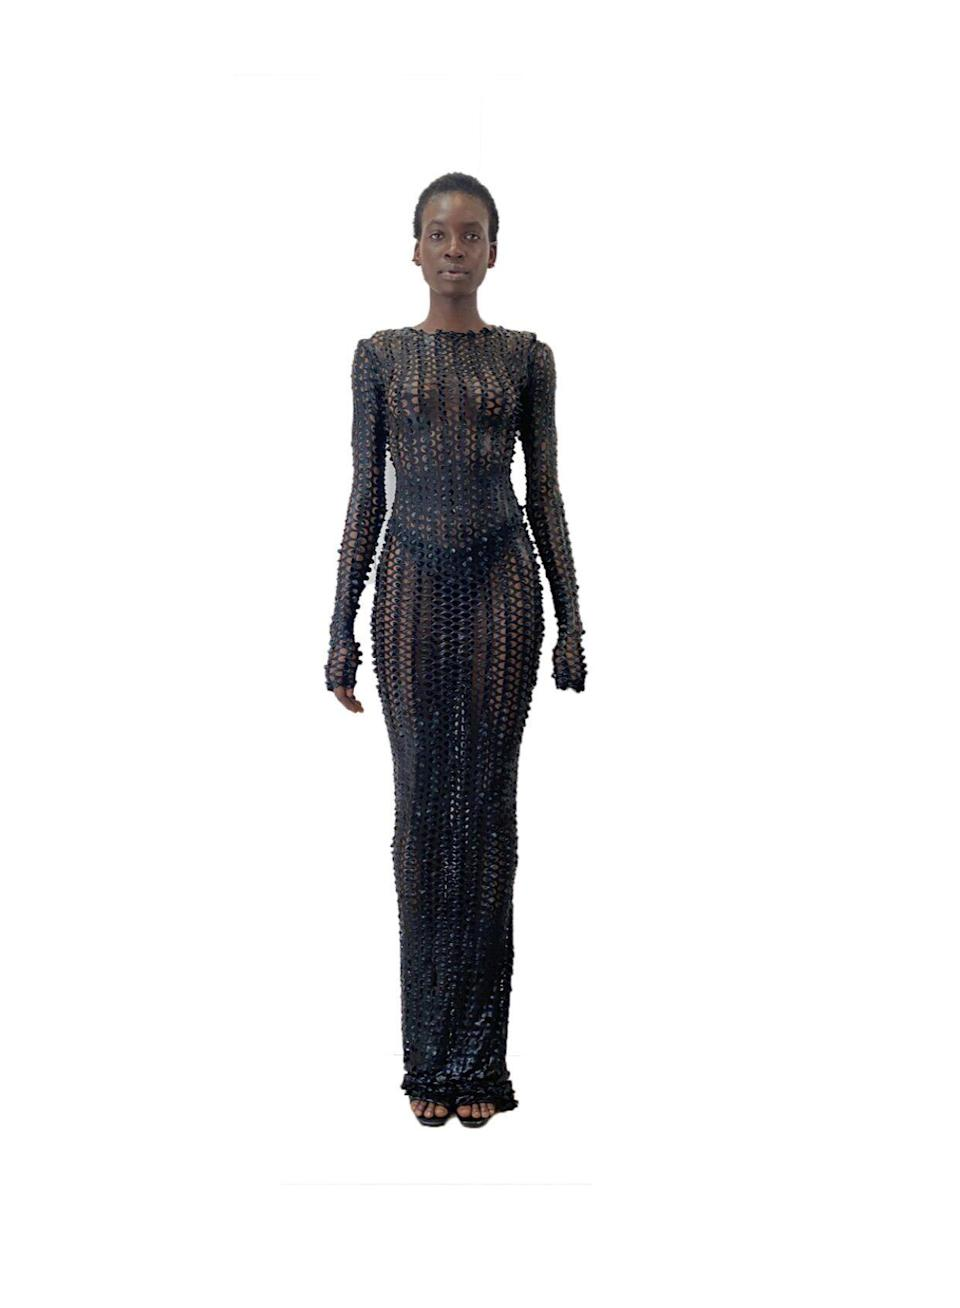 """<p><strong>TLZ </strong></p><p>tlzlf.com</p><p><strong>$198.00</strong></p><p><a href=""""https://www.tlzlf.com/new-collection/black-fishnet-floor-length-dress"""" rel=""""nofollow noopener"""" target=""""_blank"""" data-ylk=""""slk:Shop Now"""" class=""""link rapid-noclick-resp"""">Shop Now</a></p><p>Technically, you could wear this one in the summer over your bikini, but it'll also look fly during those end-of-the year parties.</p>"""